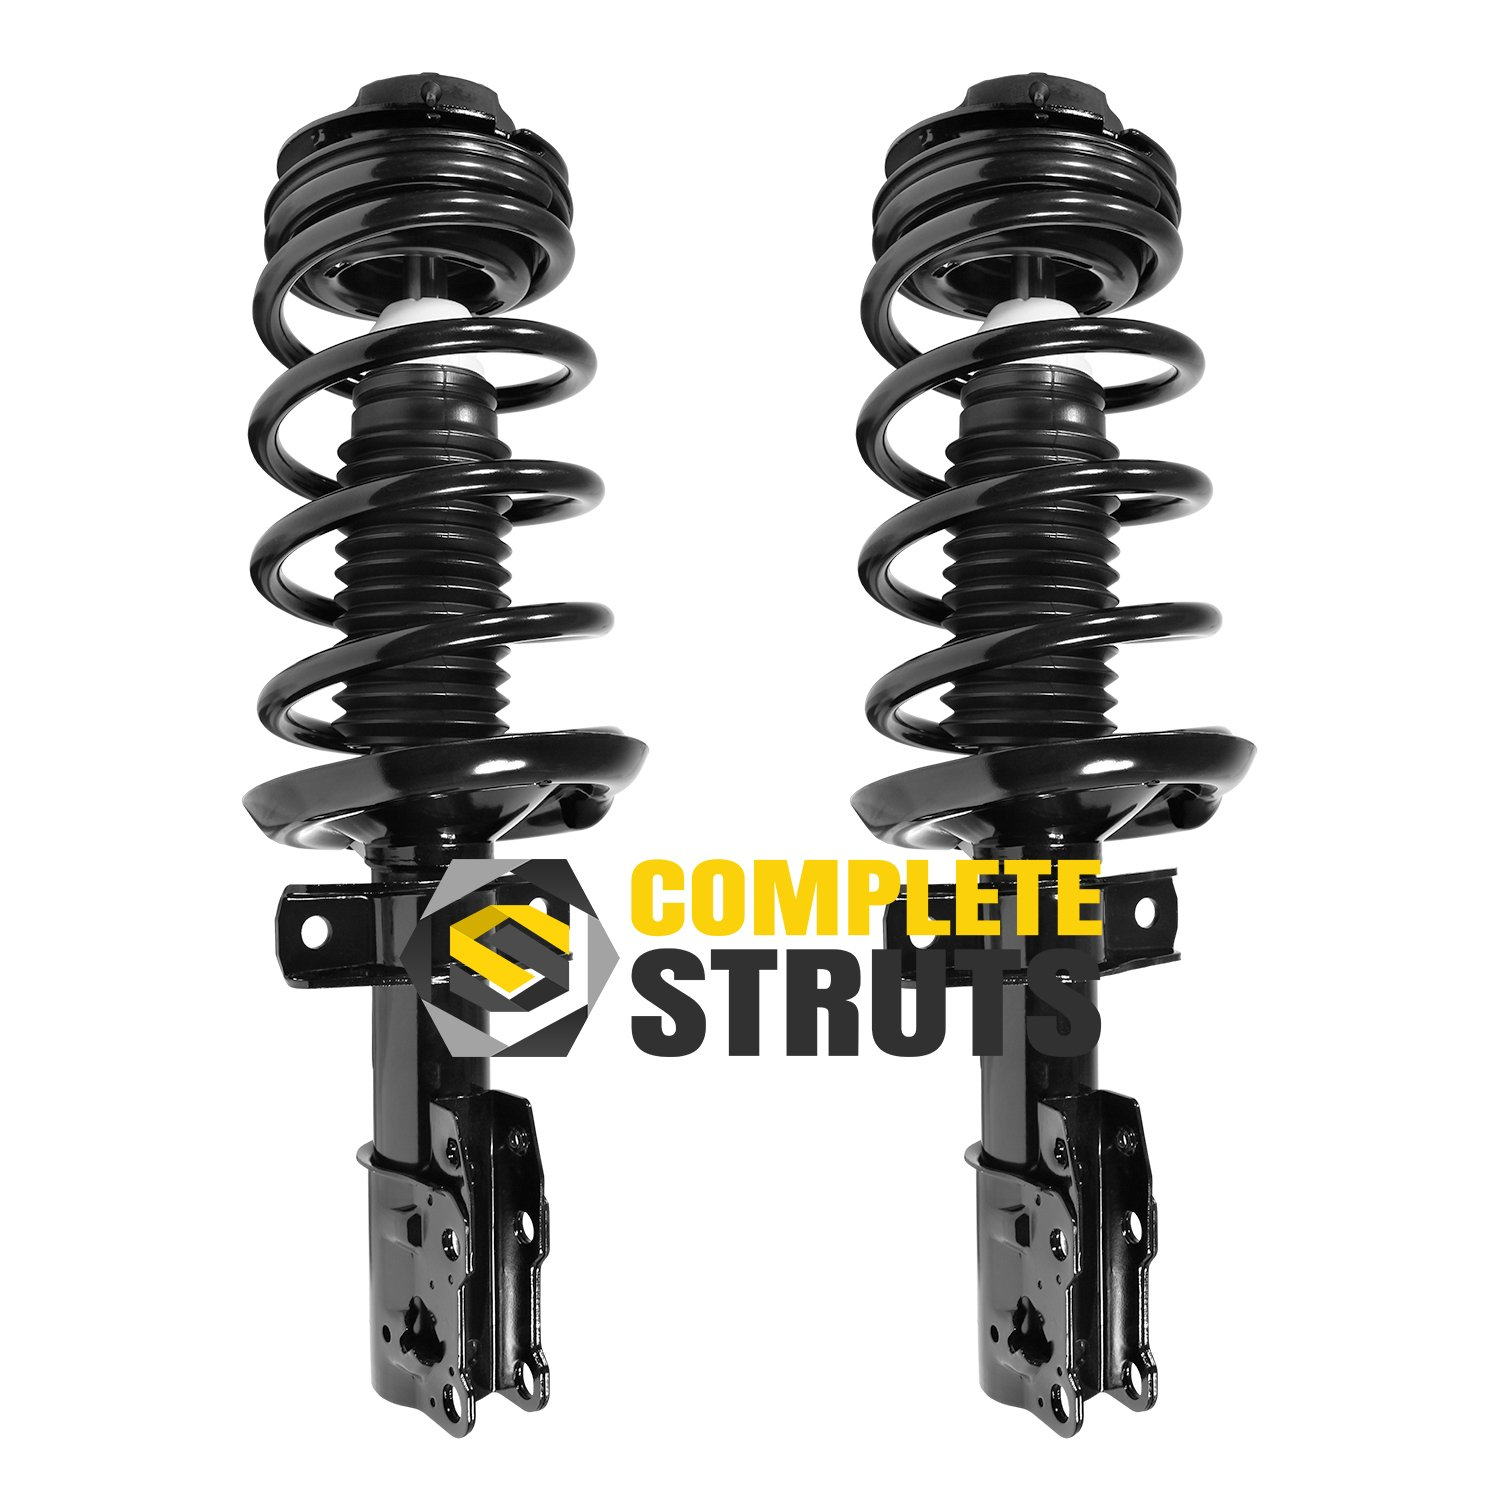 Set of 4 Front Quick Complete Struts /& Coil Spring Assemblies Compatible with 2009-2012 Toyota RAV4